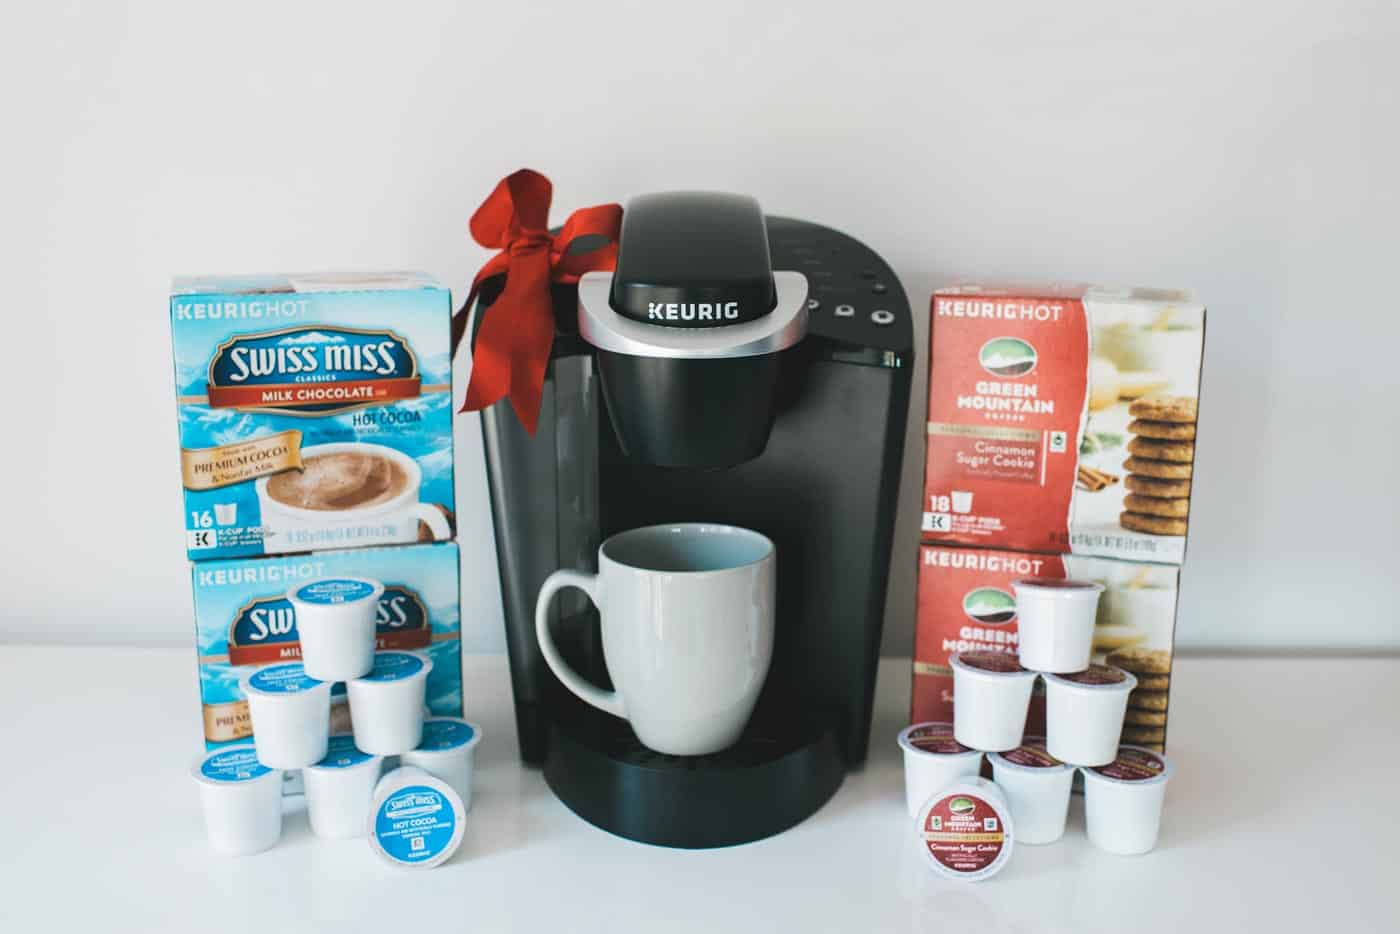 Keurig Giveaway with Tiffani Thiessen